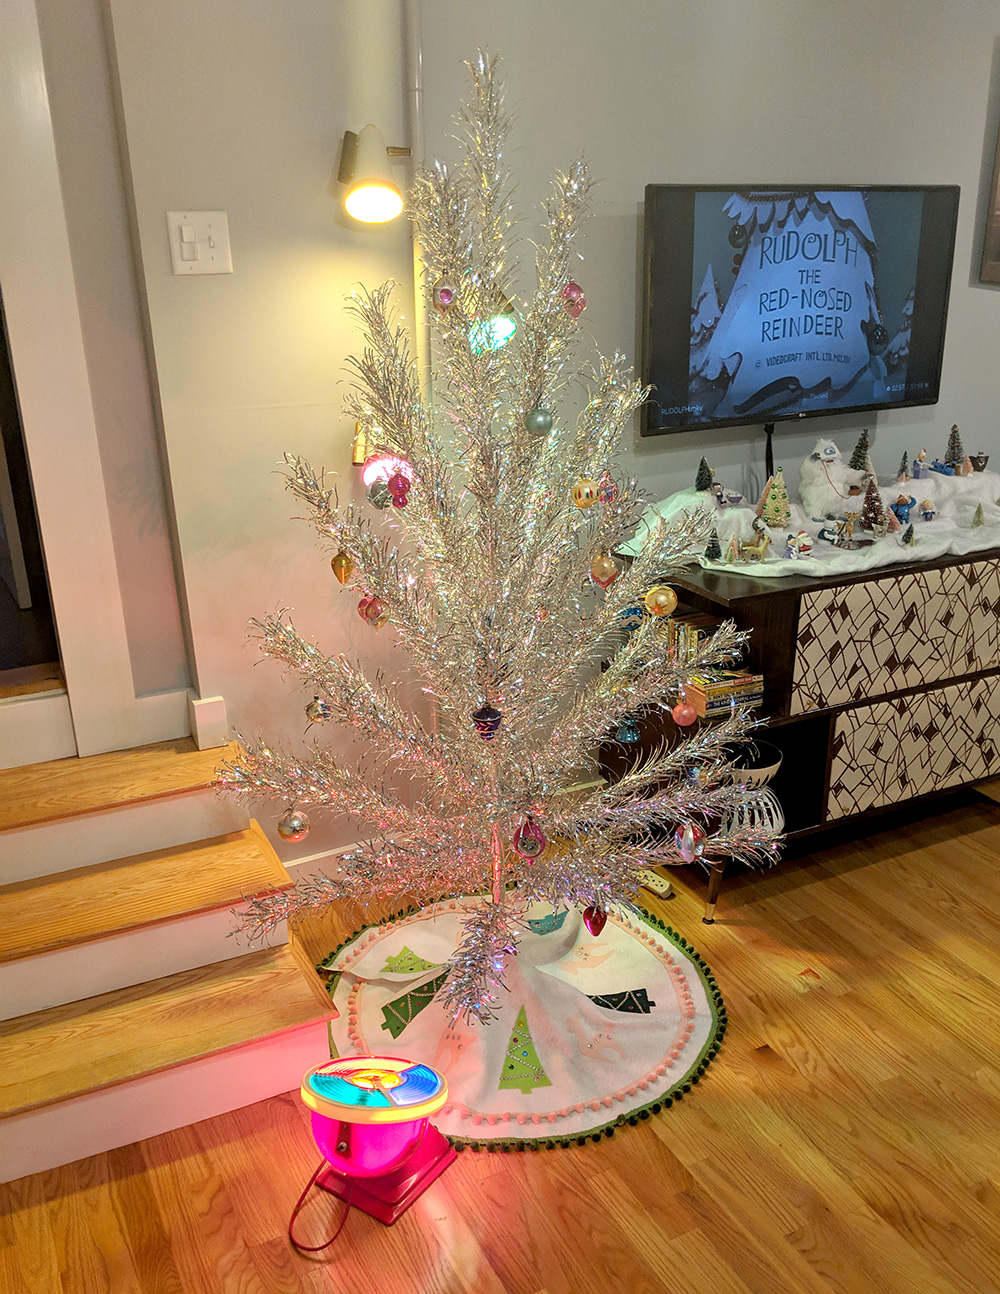 Our living room with sparkly aluminum Christmas tree